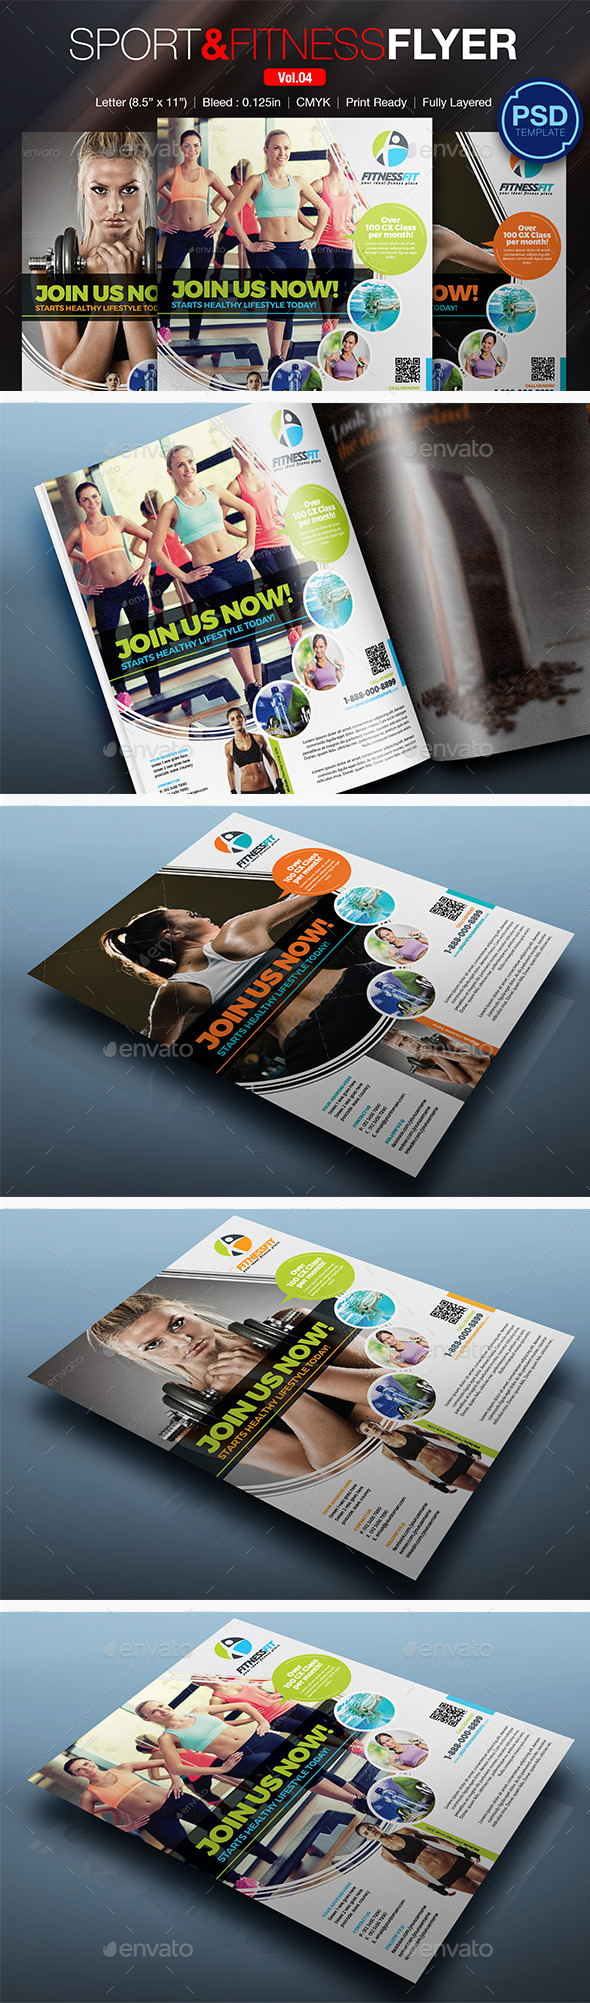 Sport & Fitness Flyer Vol.04